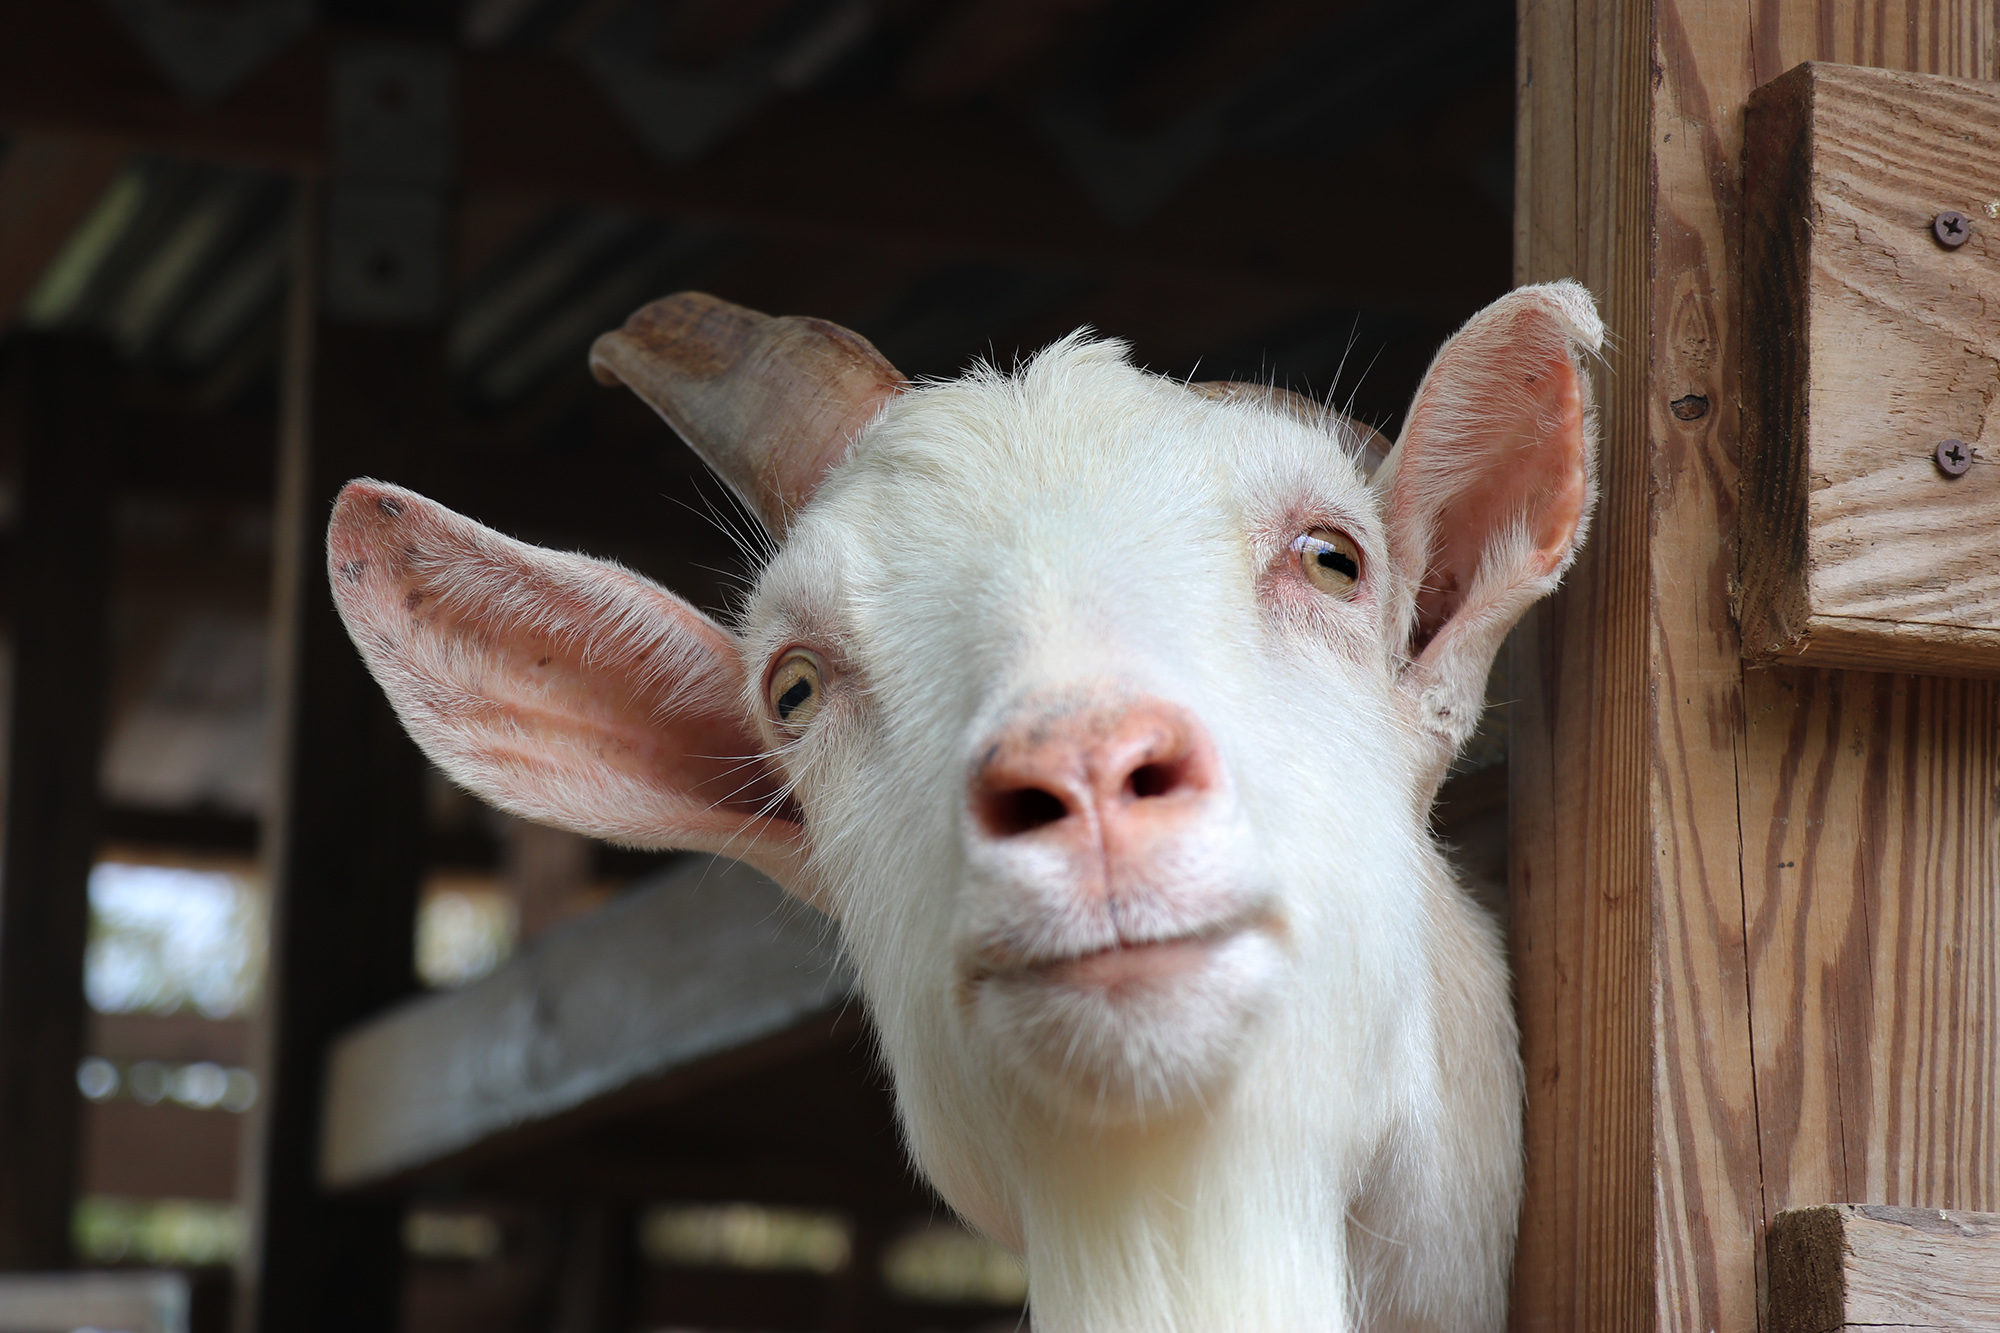 Goats are raised for dairy and fertilizer at Mayani Farms. Photo by Tina Locurto